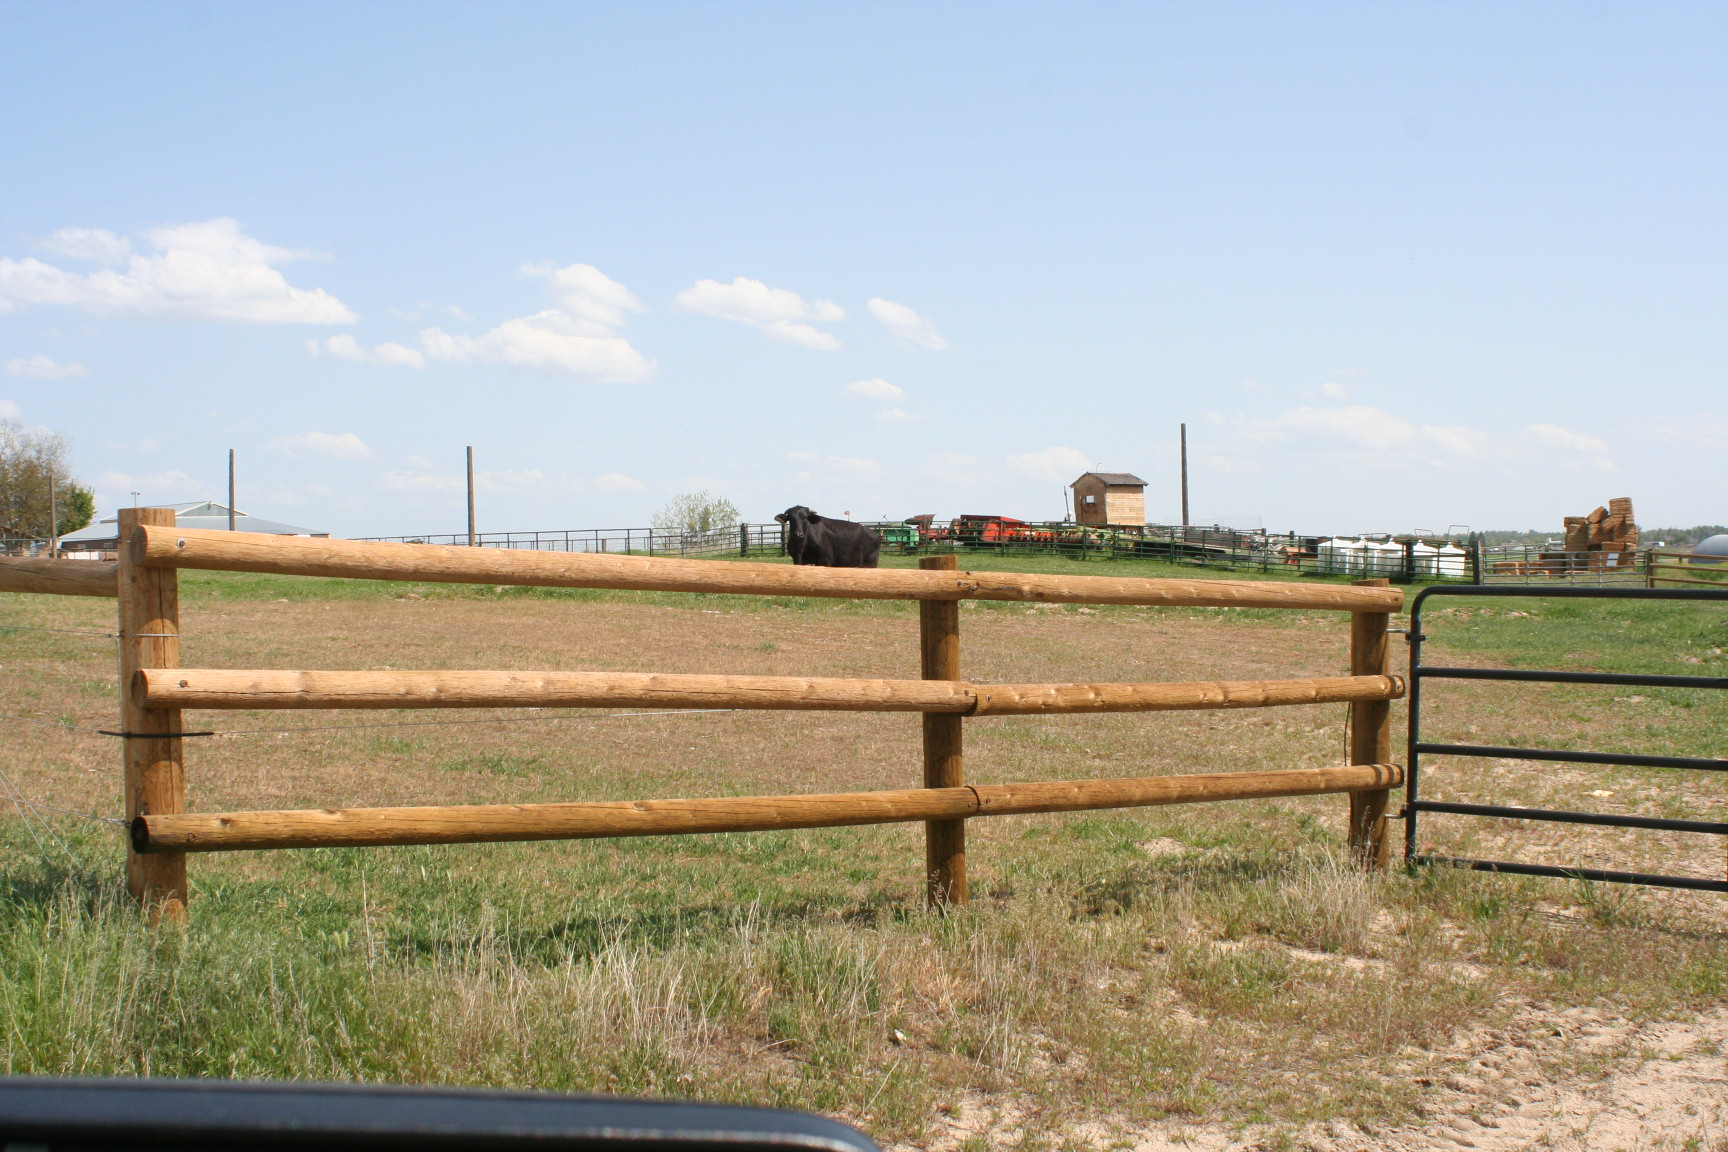 Post And Pole Fencing : Nail rail fencing wood fences parma post and pole